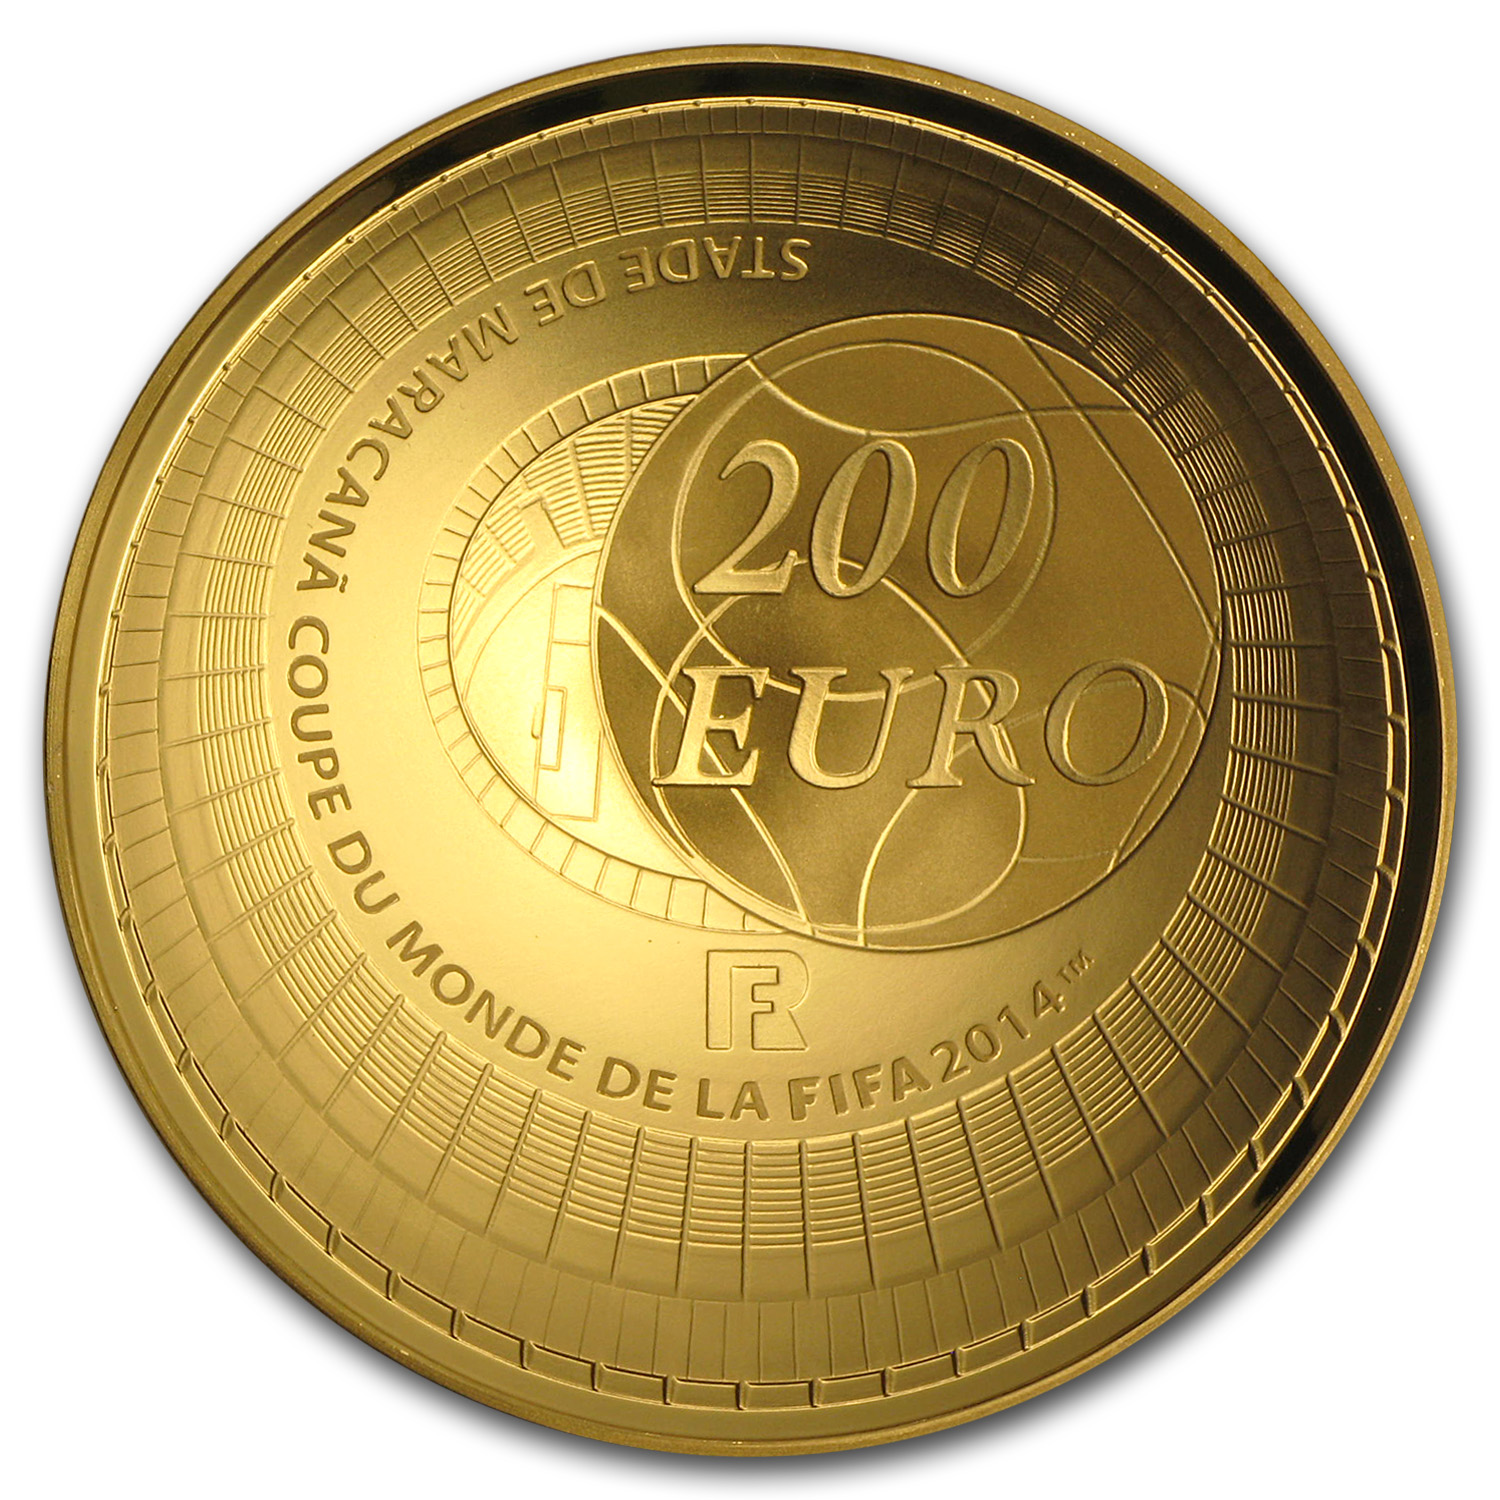 2014 France 200€ 1 oz Gold Proof FIFA World Cup